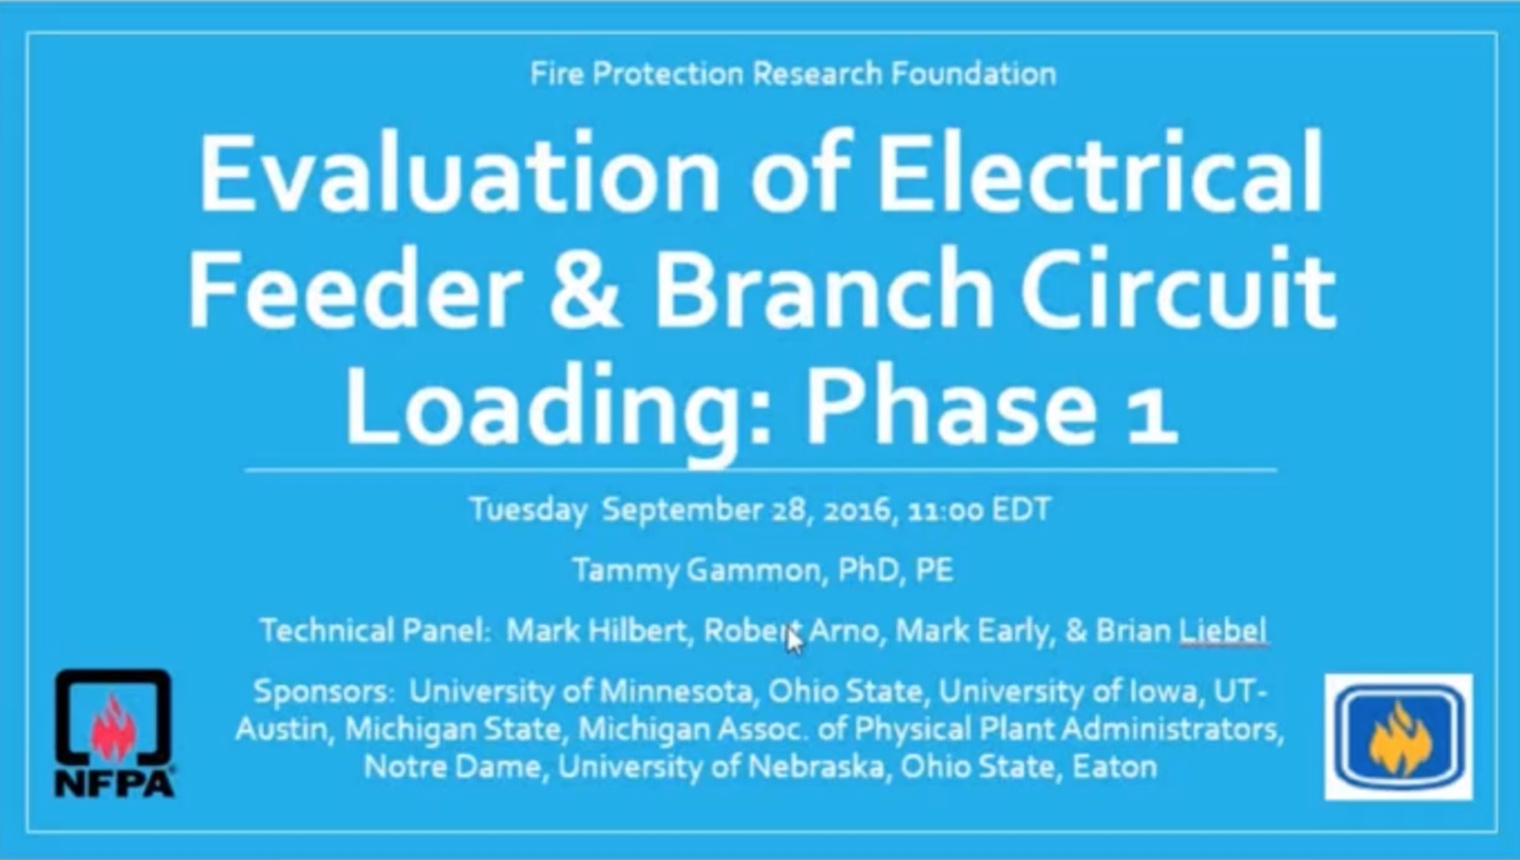 Evaluation of Circuit Loading: NFPA Fire Protection Research Foundation